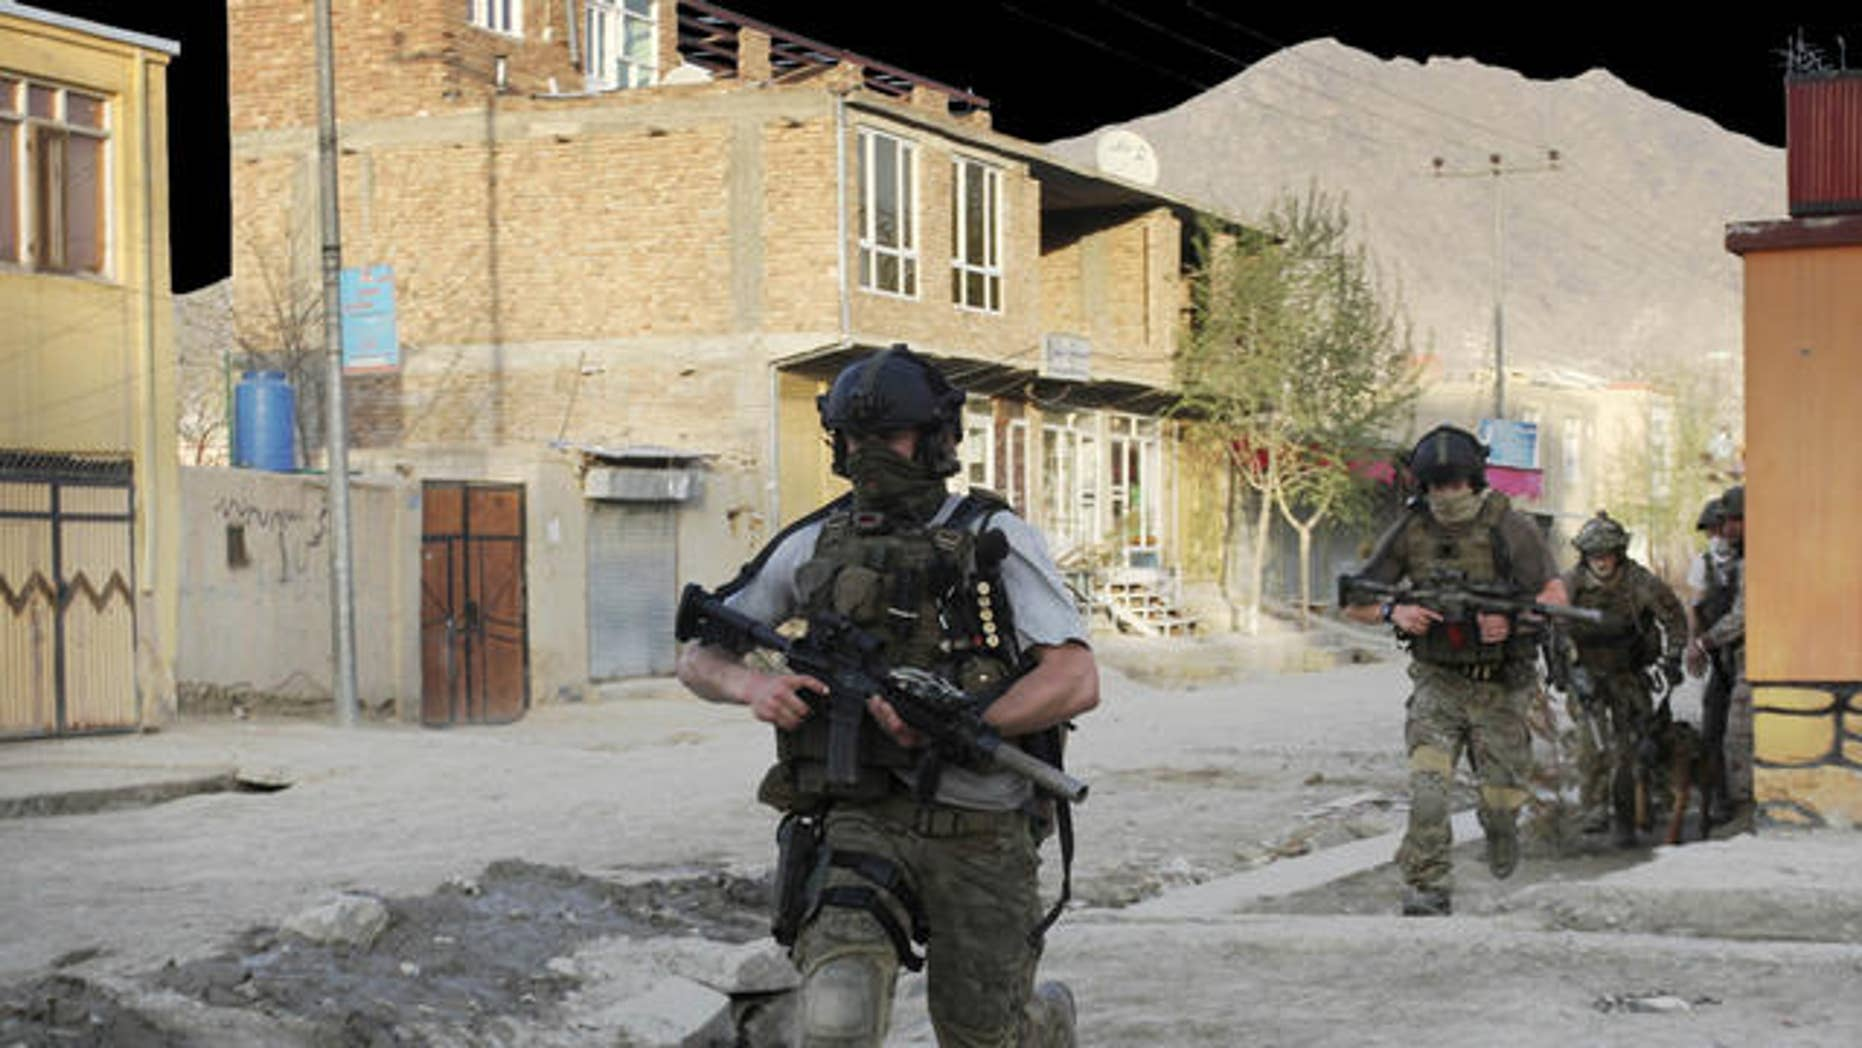 April 15, 2012: NATO soldiers run during a gun battle in Kabul, Afghanistan.